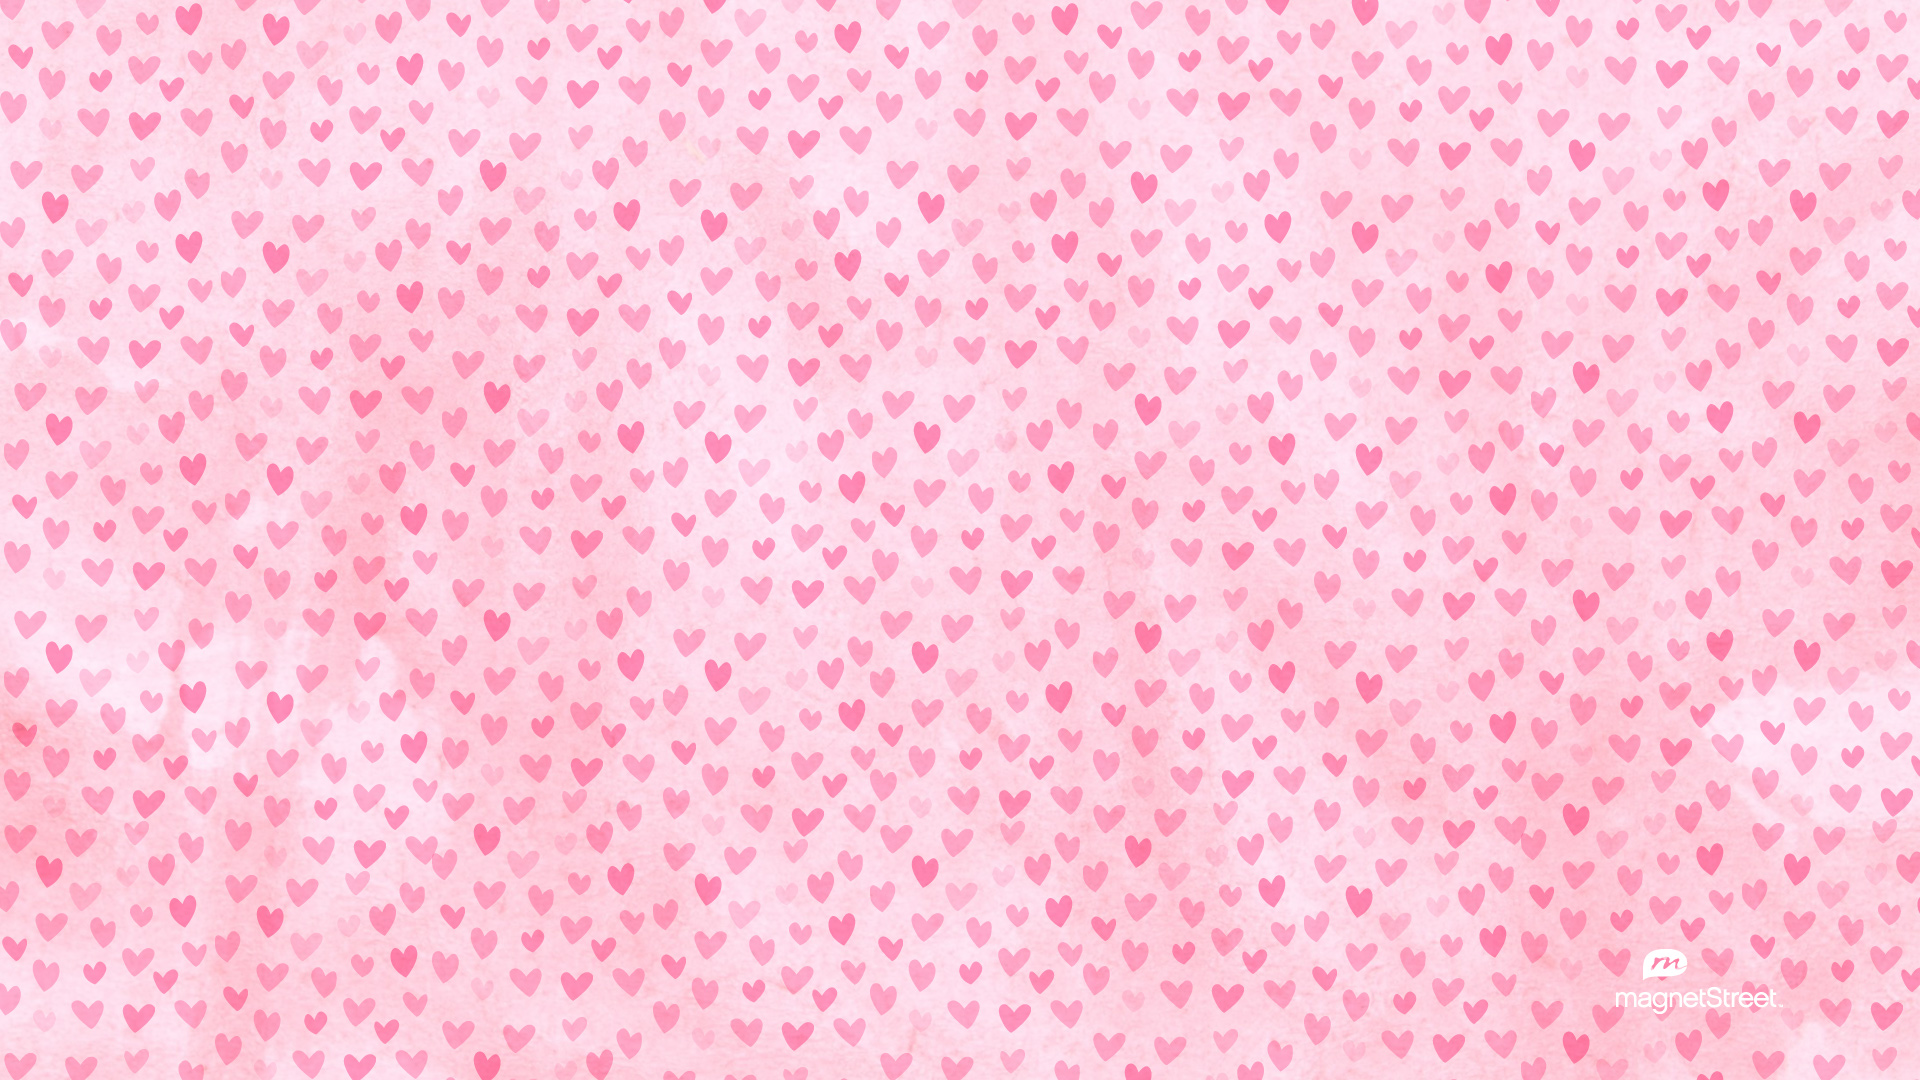 valentines day desktop background